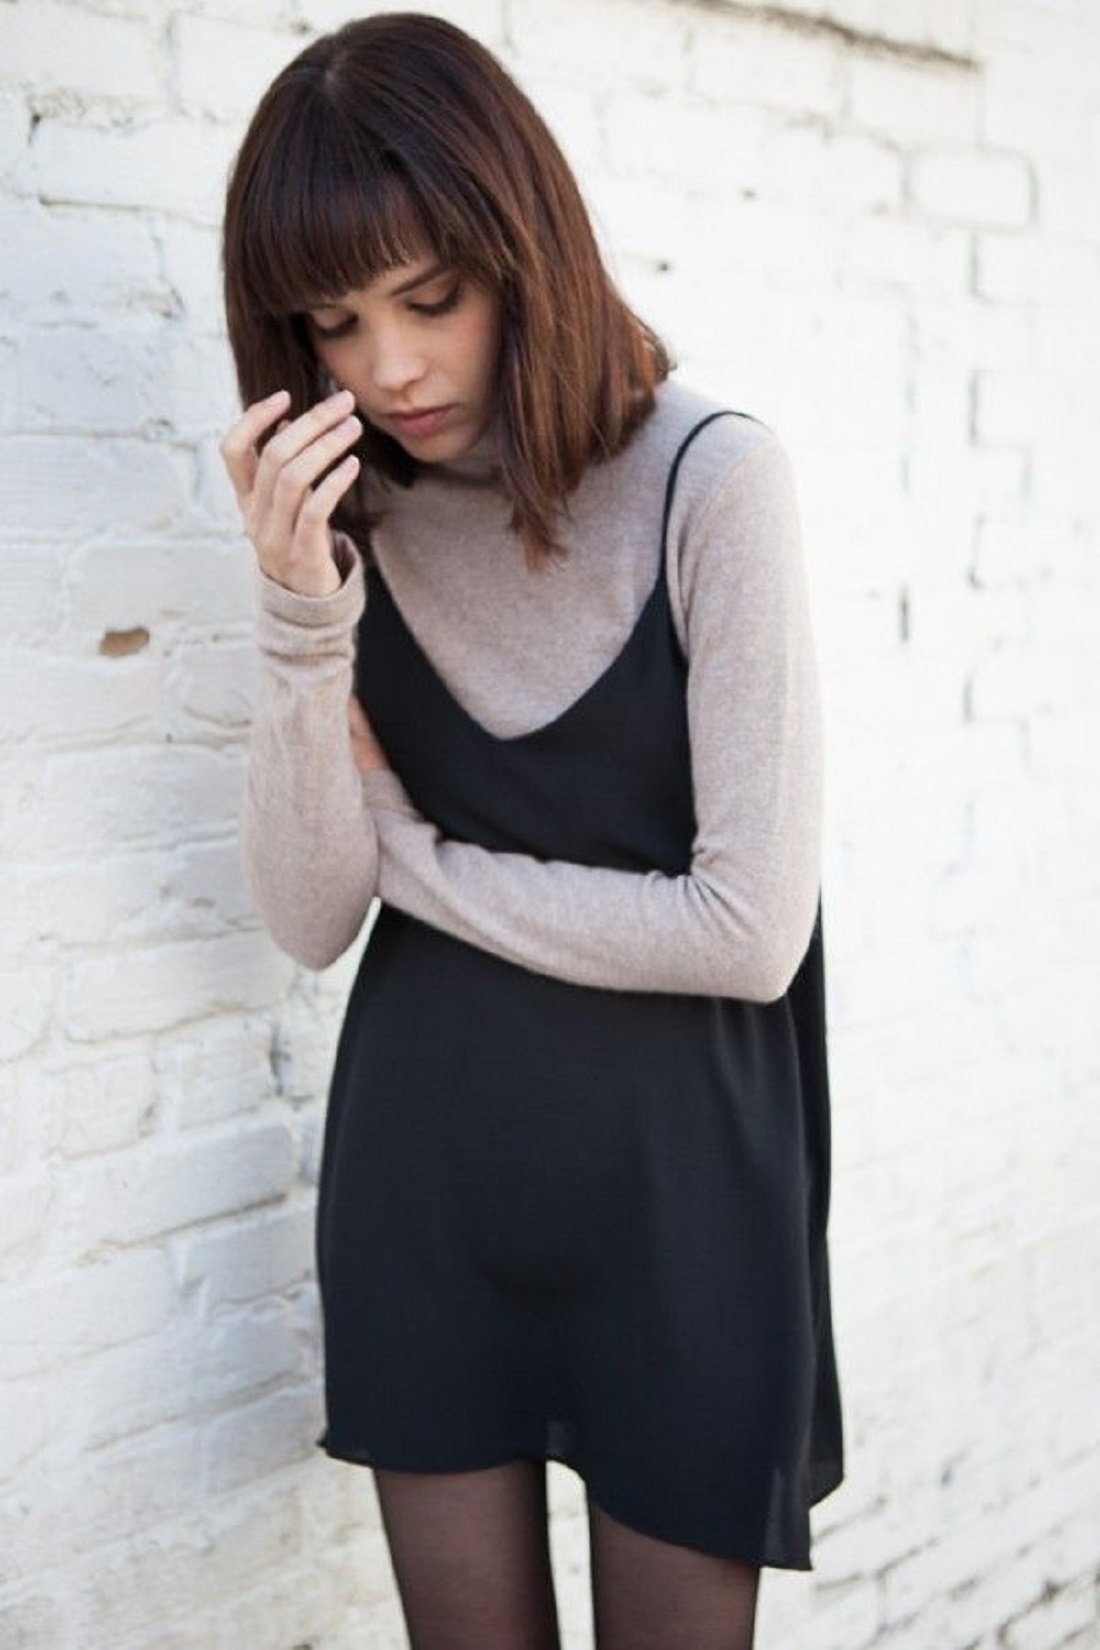 5 Stylish Ways to Incorporate a Turtleneck Sweater Into ...